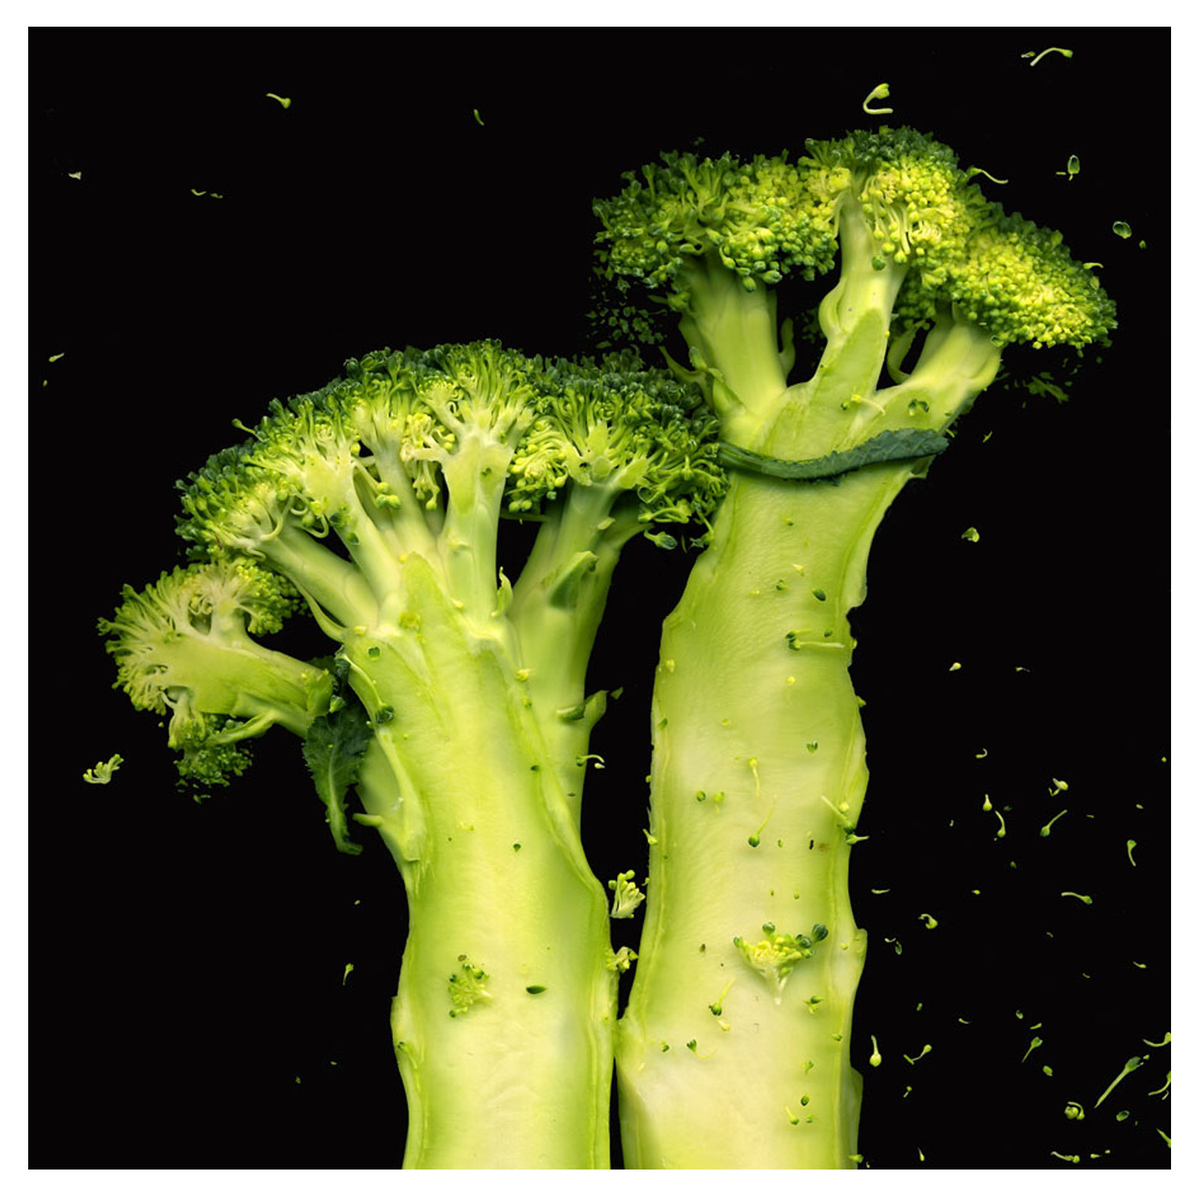 Broccoli Twins (large view)